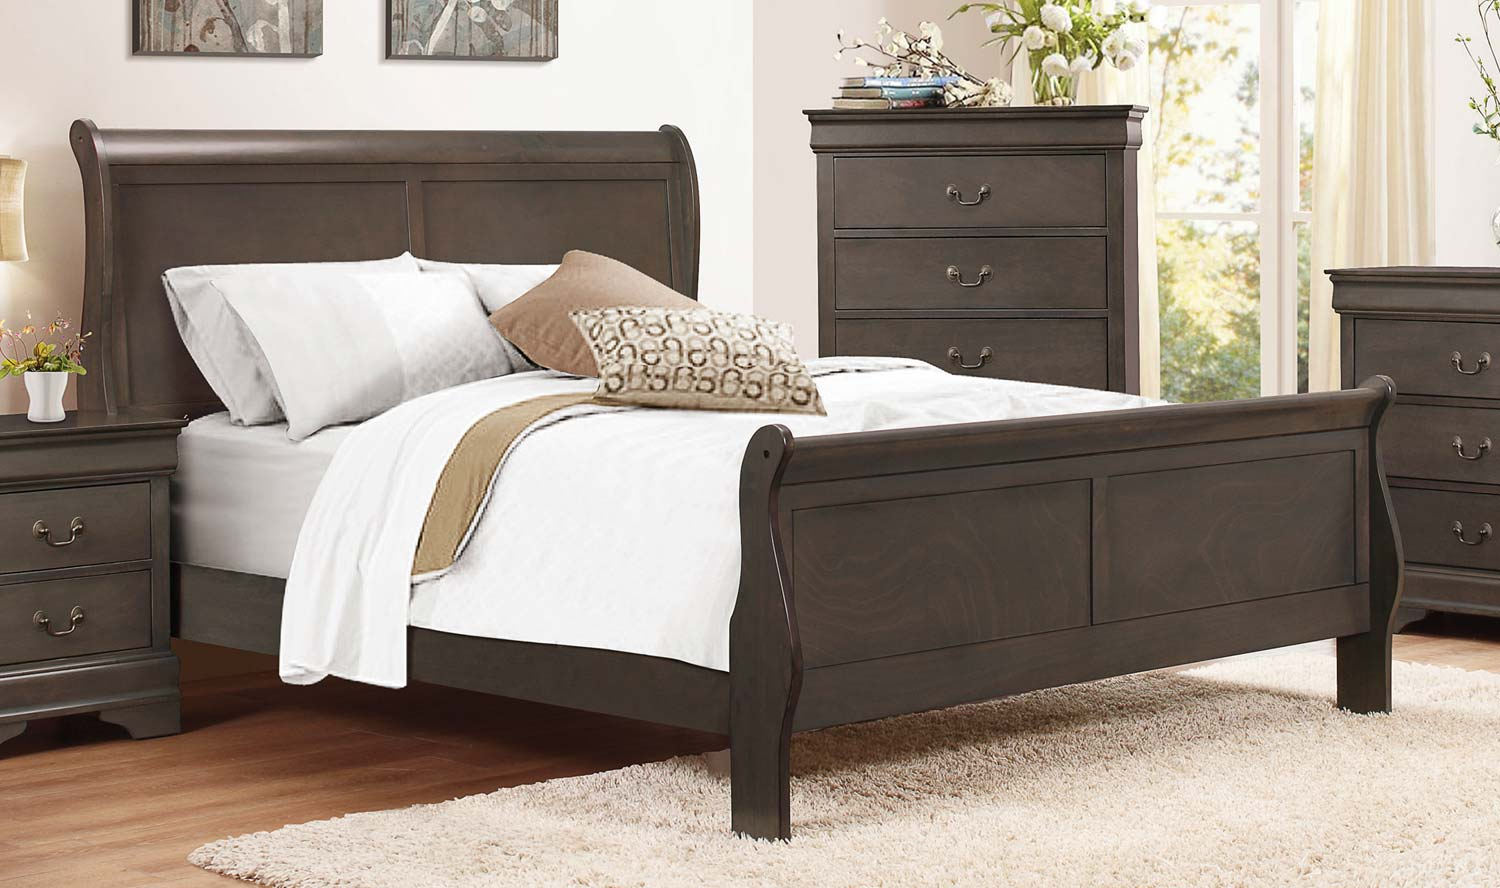 Homelegance Mayville Sleigh Bed - Stained Grey